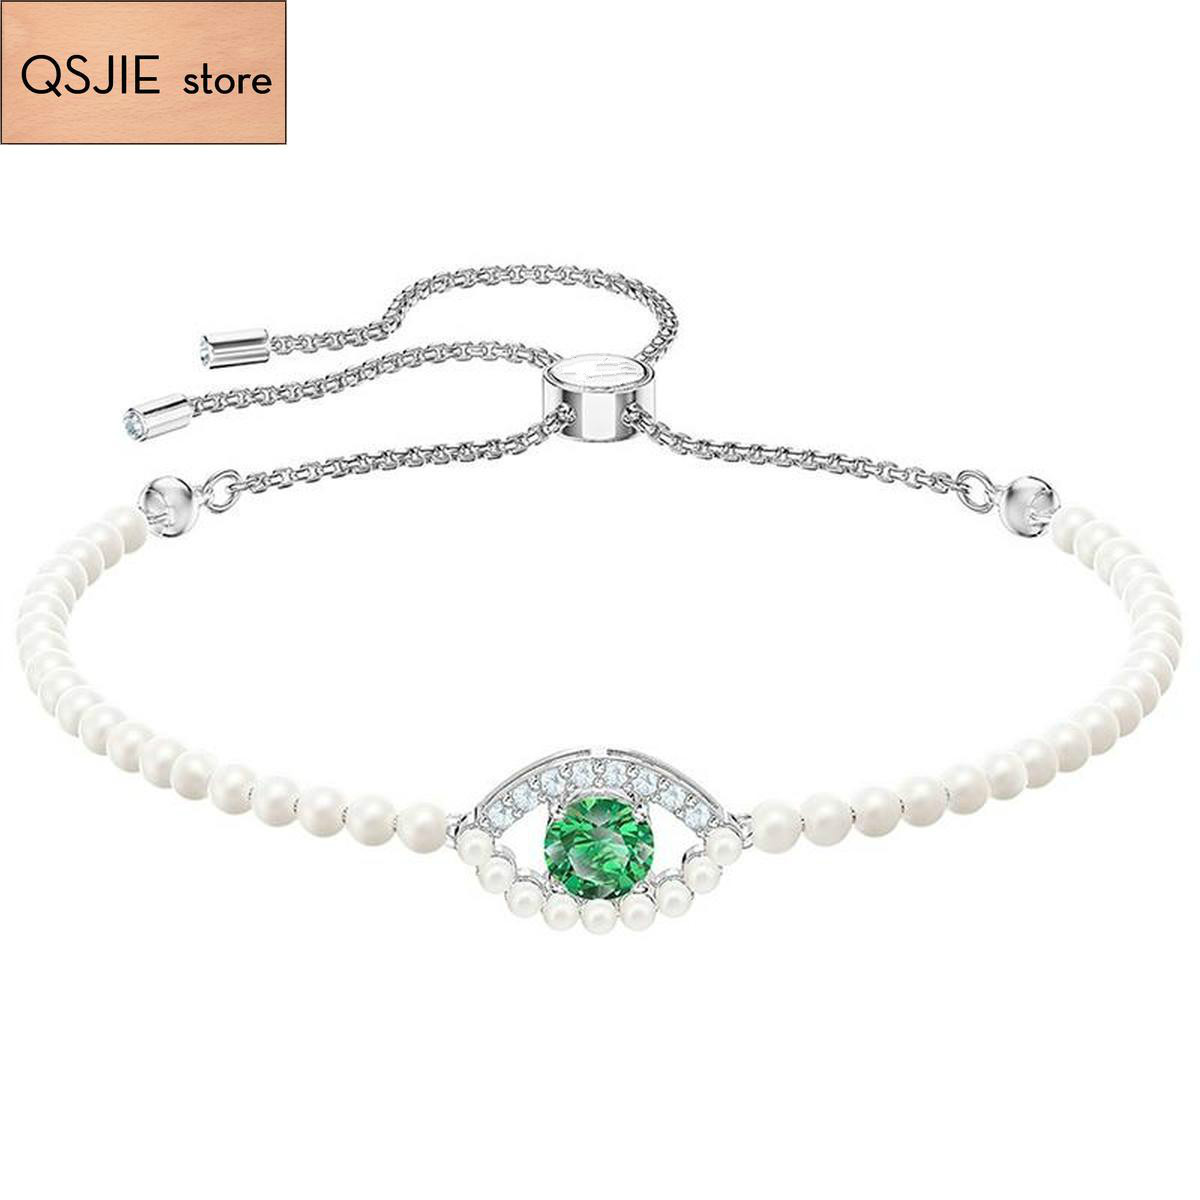 High quality SWA original high lucky bracelet, green, factory exquisite craftsmanship Bracelet